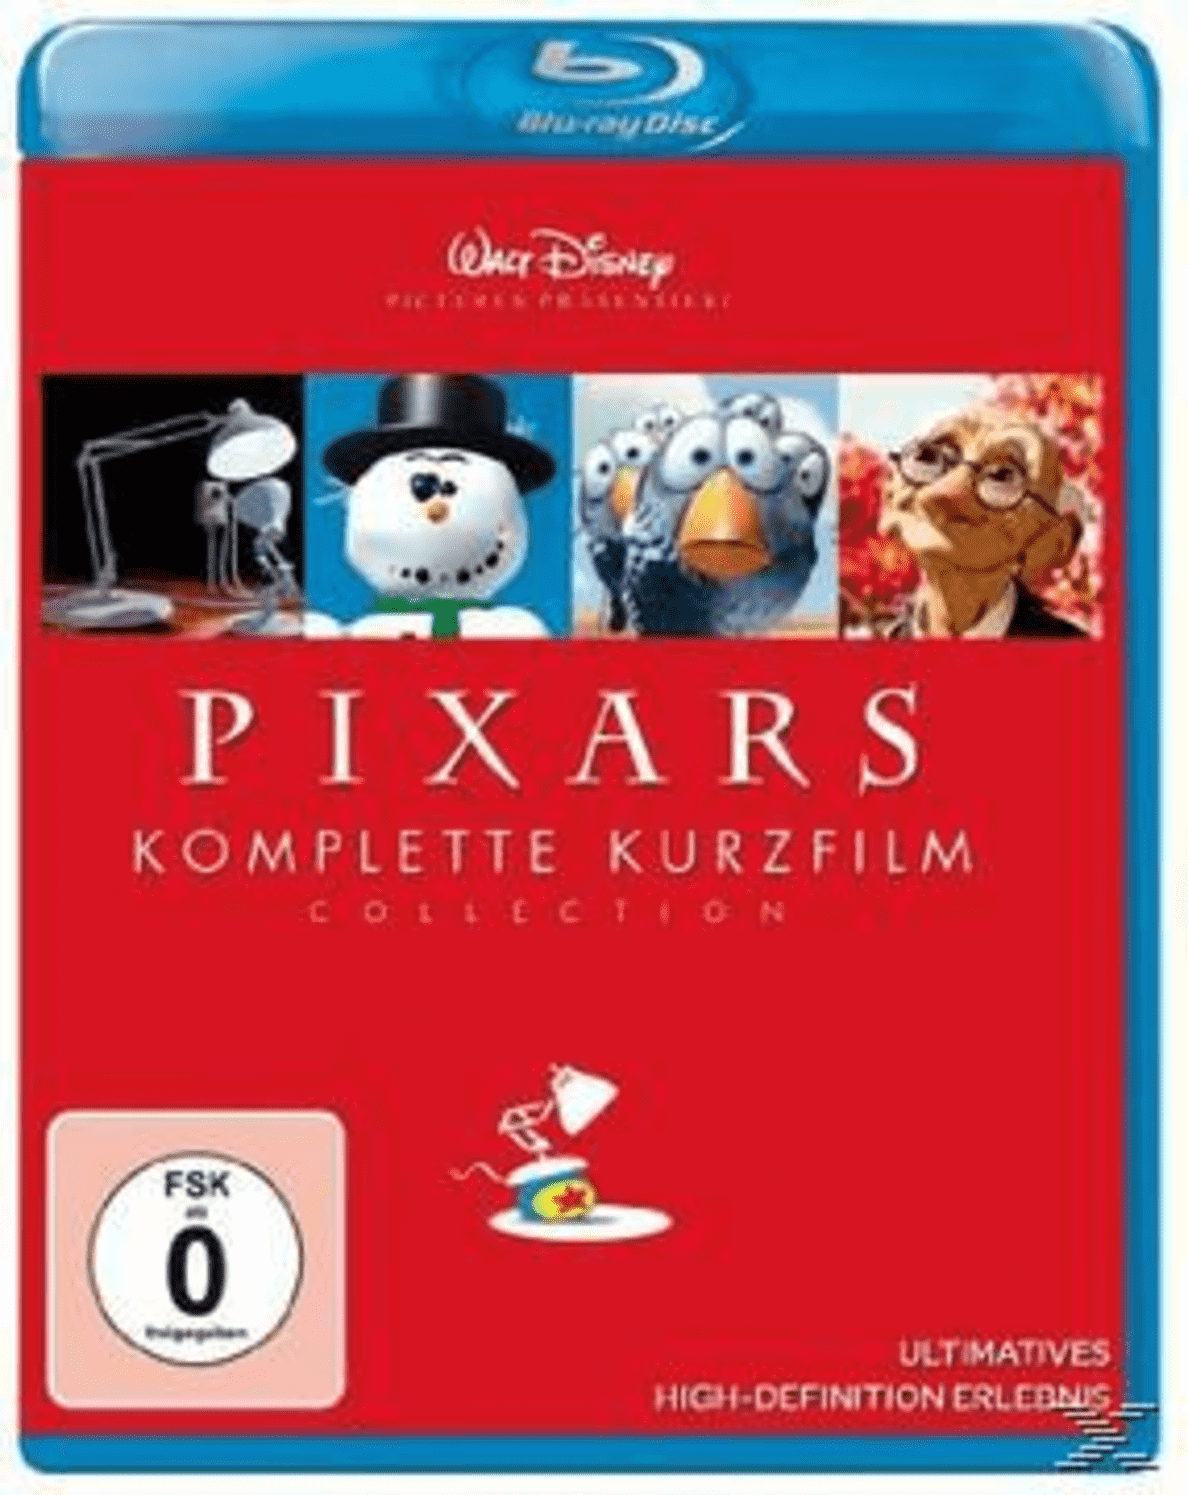 Pixars komplette Kurzfilm Collection auf Blu-ray